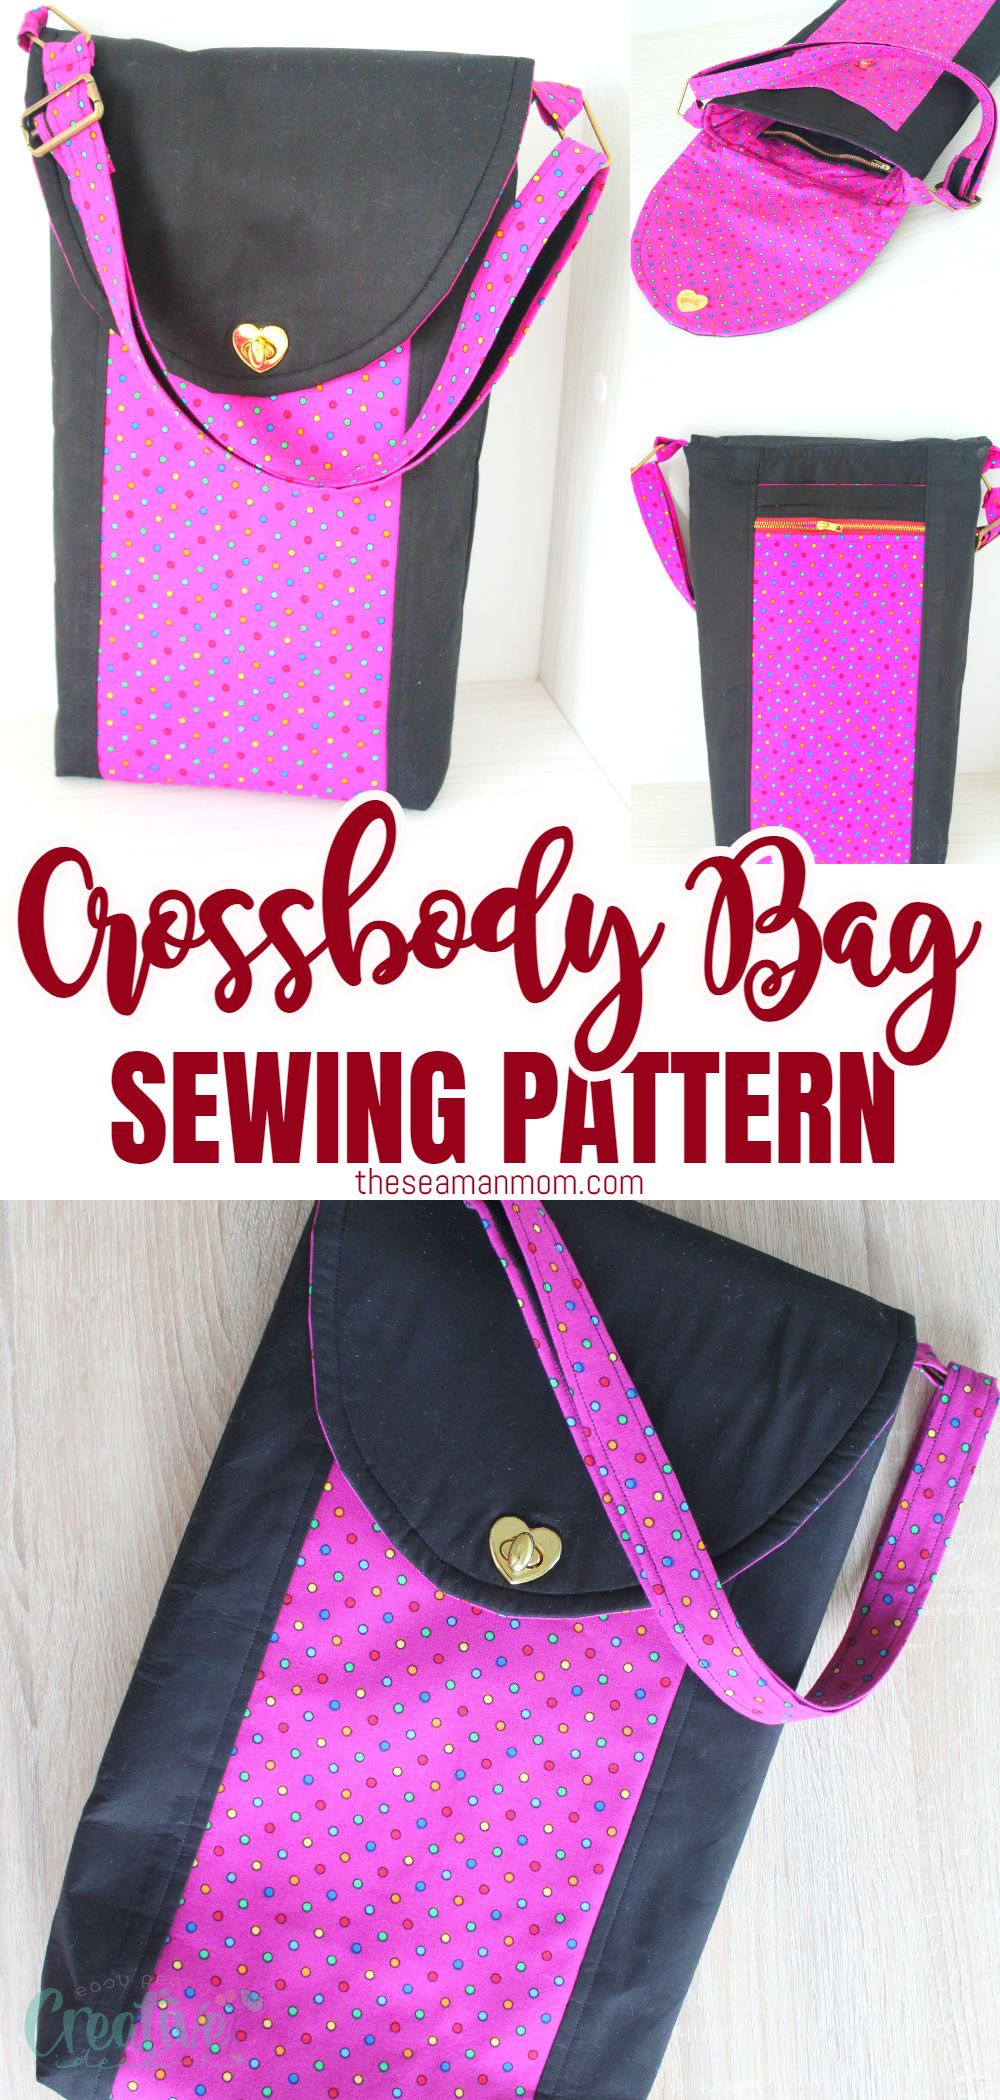 If you're looking for a fun to wear bag that is also easy to make, chic and incredibly useful, a cross body bag is a must! Make your own to carry just about anything with this simple and easy to follow cross body bag pattern! via @petroneagu